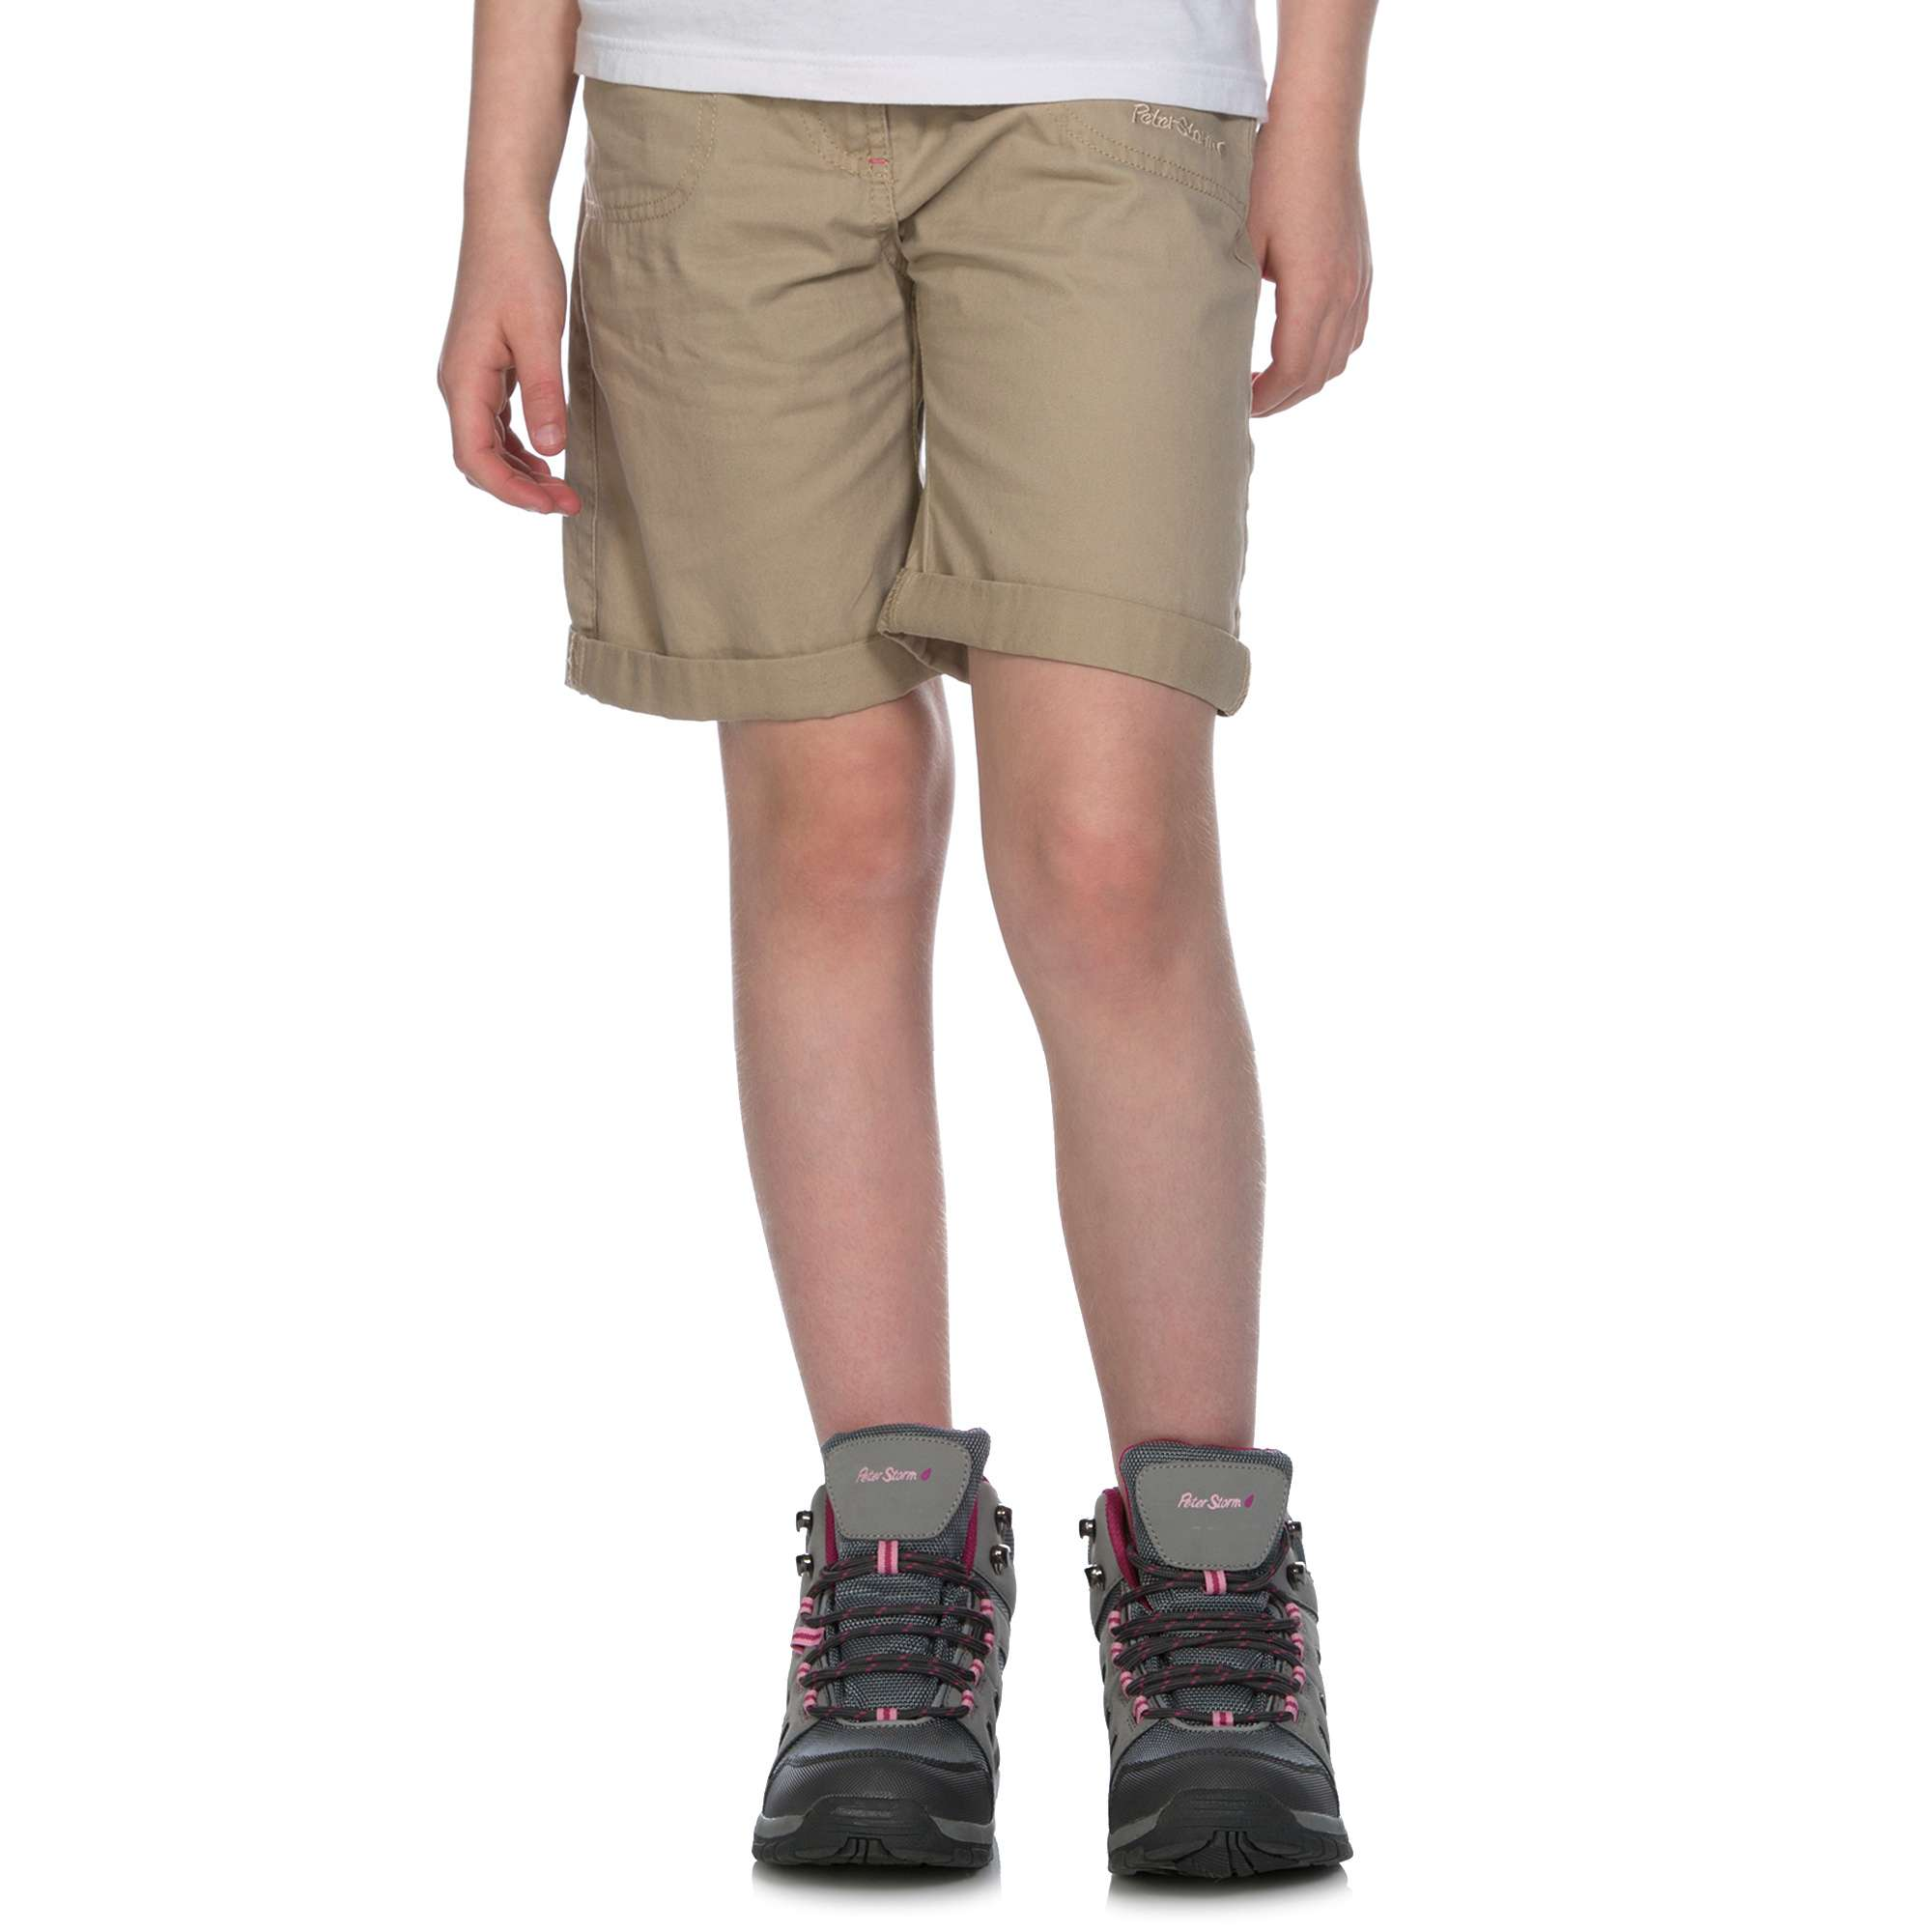 PETER STORM Girls' Chino Shorts